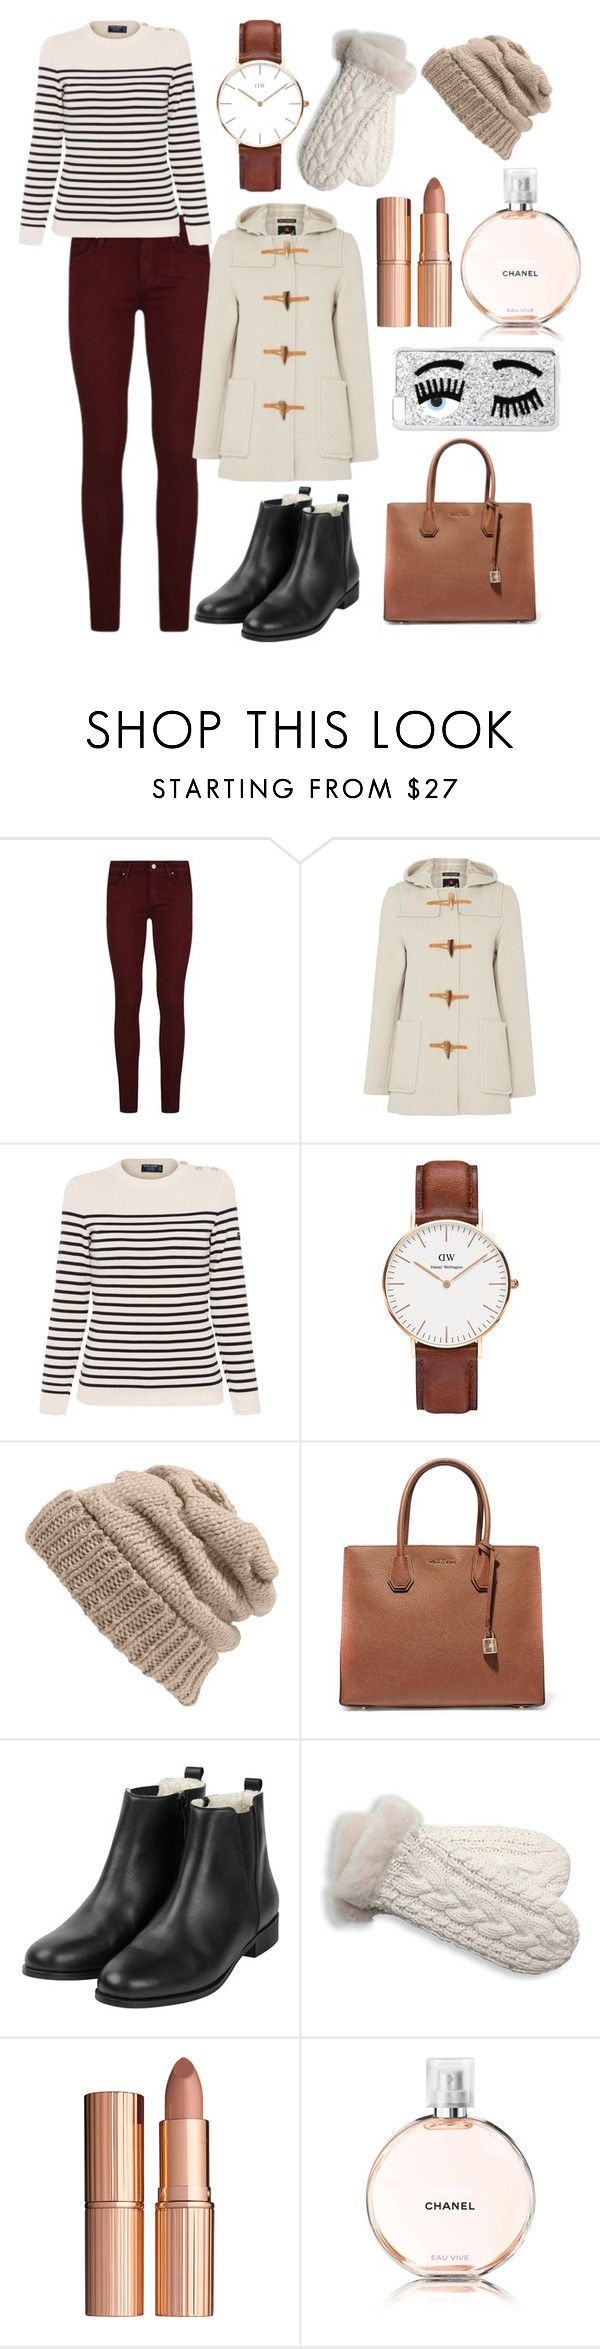 """A wintery fall outfit!"" by maddie-dobson ❤ liked on Polyvore featuring Paige Denim, Gloverall, Saint James, Daniel Wellington, Leith, MICHAEL Michael Kors, UGG Australia, Charlotte Tilbury, Chanel and Chiara Ferragni"